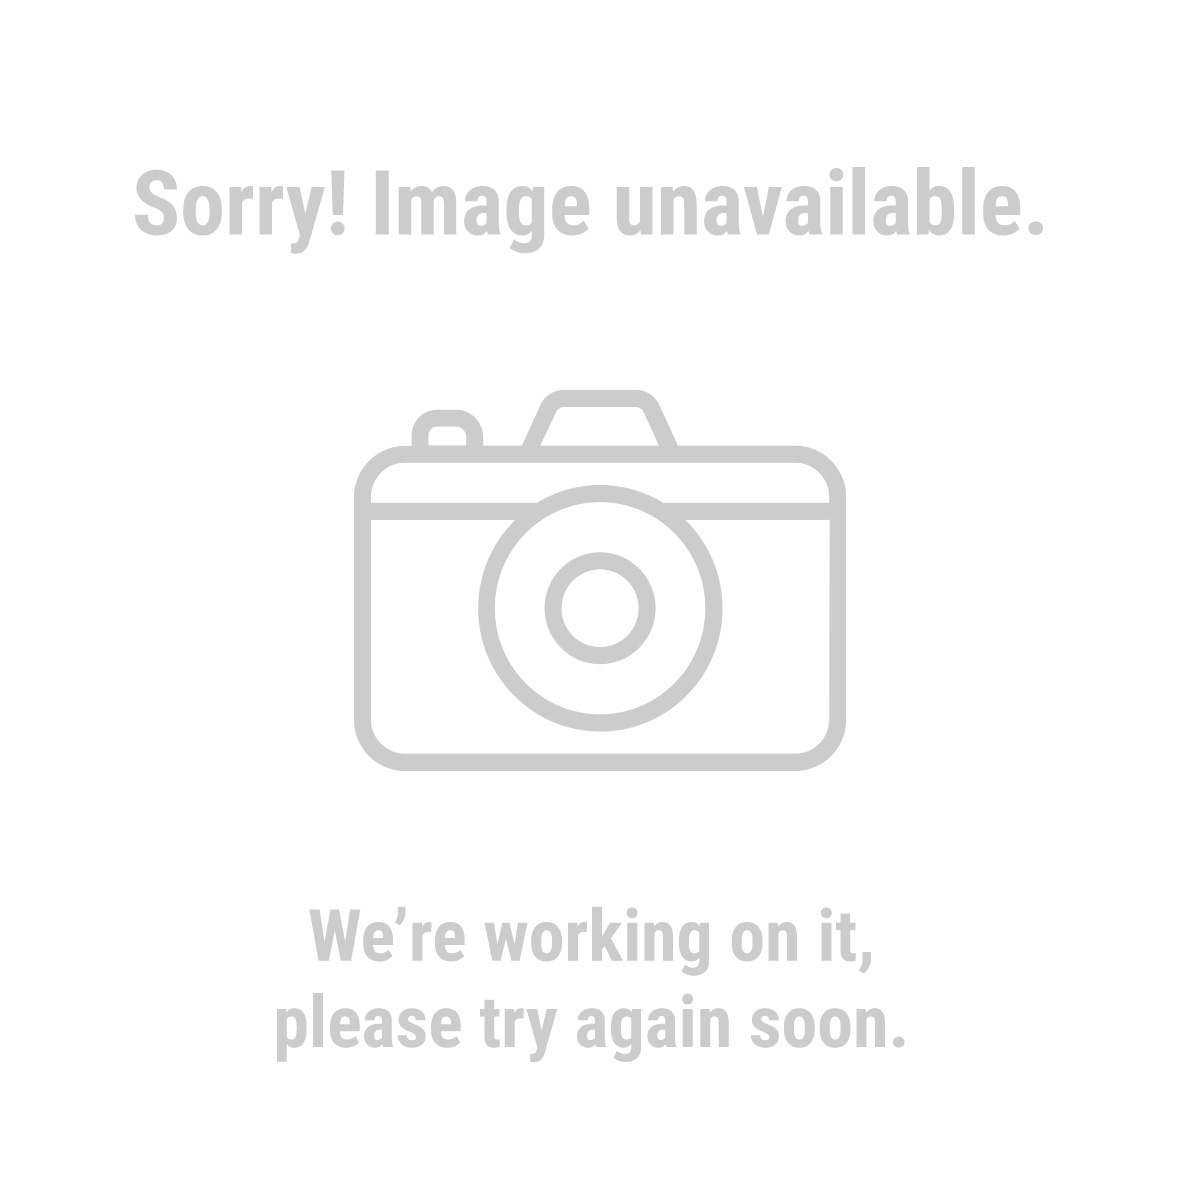 large tilt flat panel tv mount. Black Bedroom Furniture Sets. Home Design Ideas